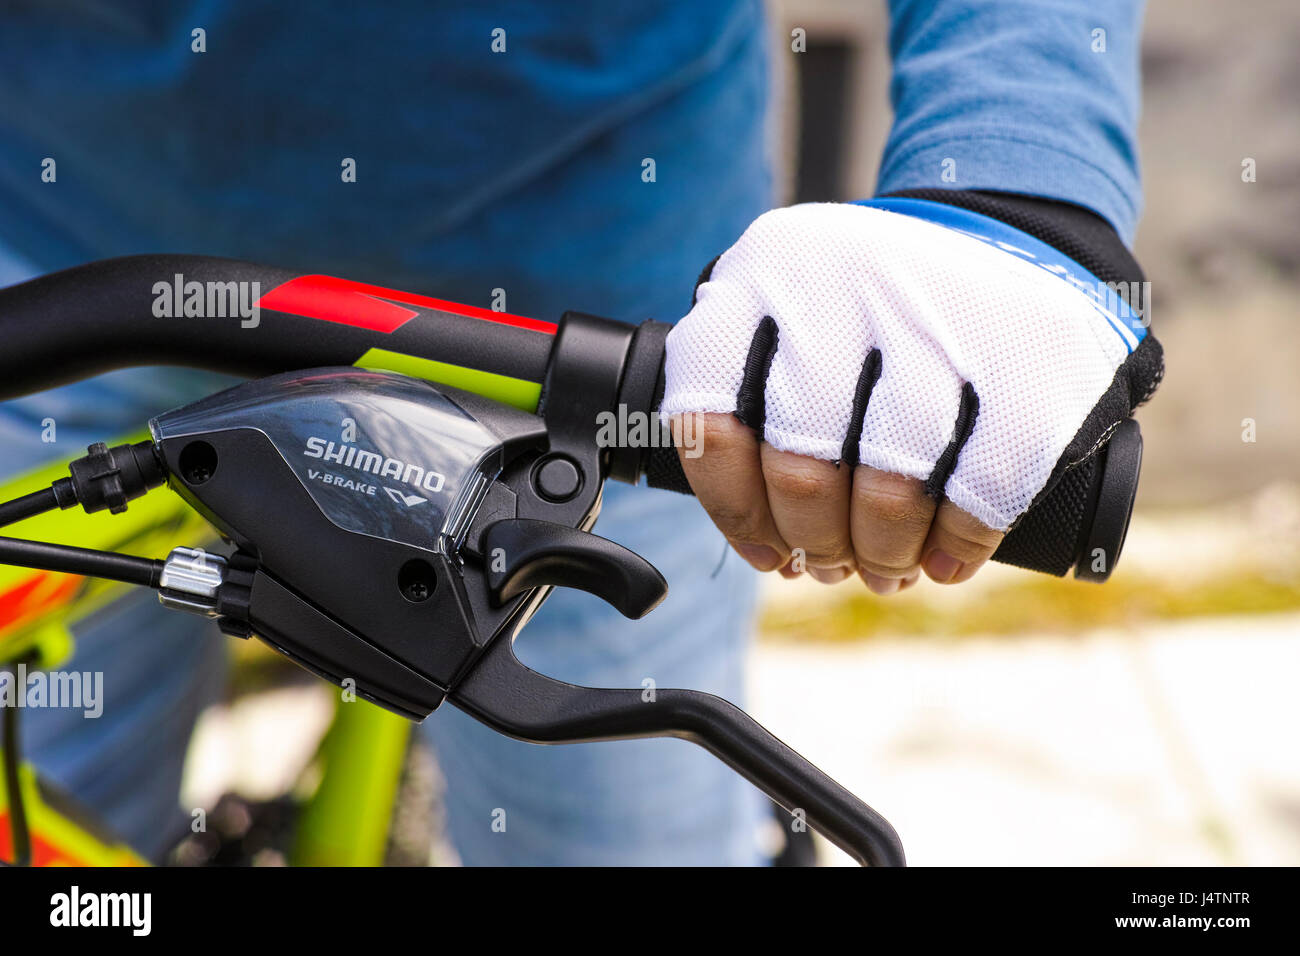 Tambov, Russian Federation - May 07, 2017 Child hand with glove on handlebars with Shimano speed shift and brake - Stock Image